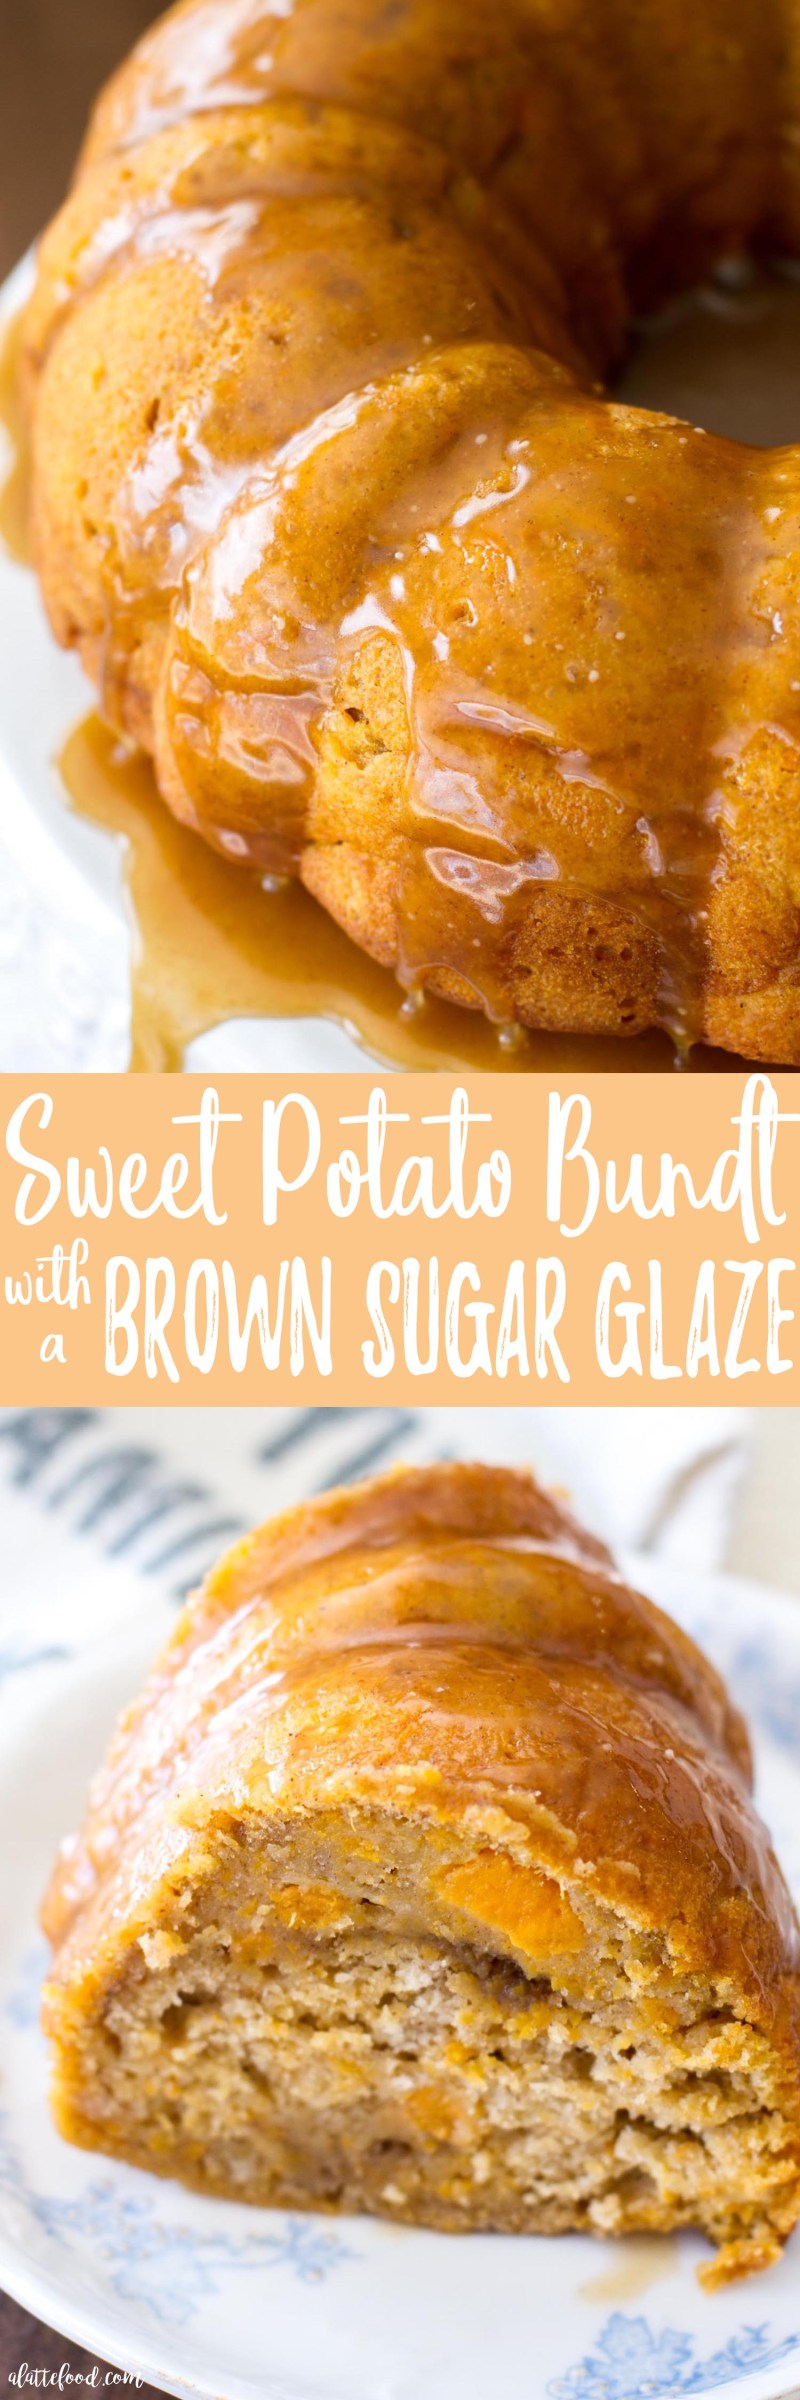 This easy bundt cake recipe is full of all the flavors of fall! Packed with brown sugar, sweet potato, and sweet spices, this Sweet Potato Bundt Cake with a Brown Sugar Glaze is sure to be a fall dessert favorite or even a new Thanksgiving dessert staple!